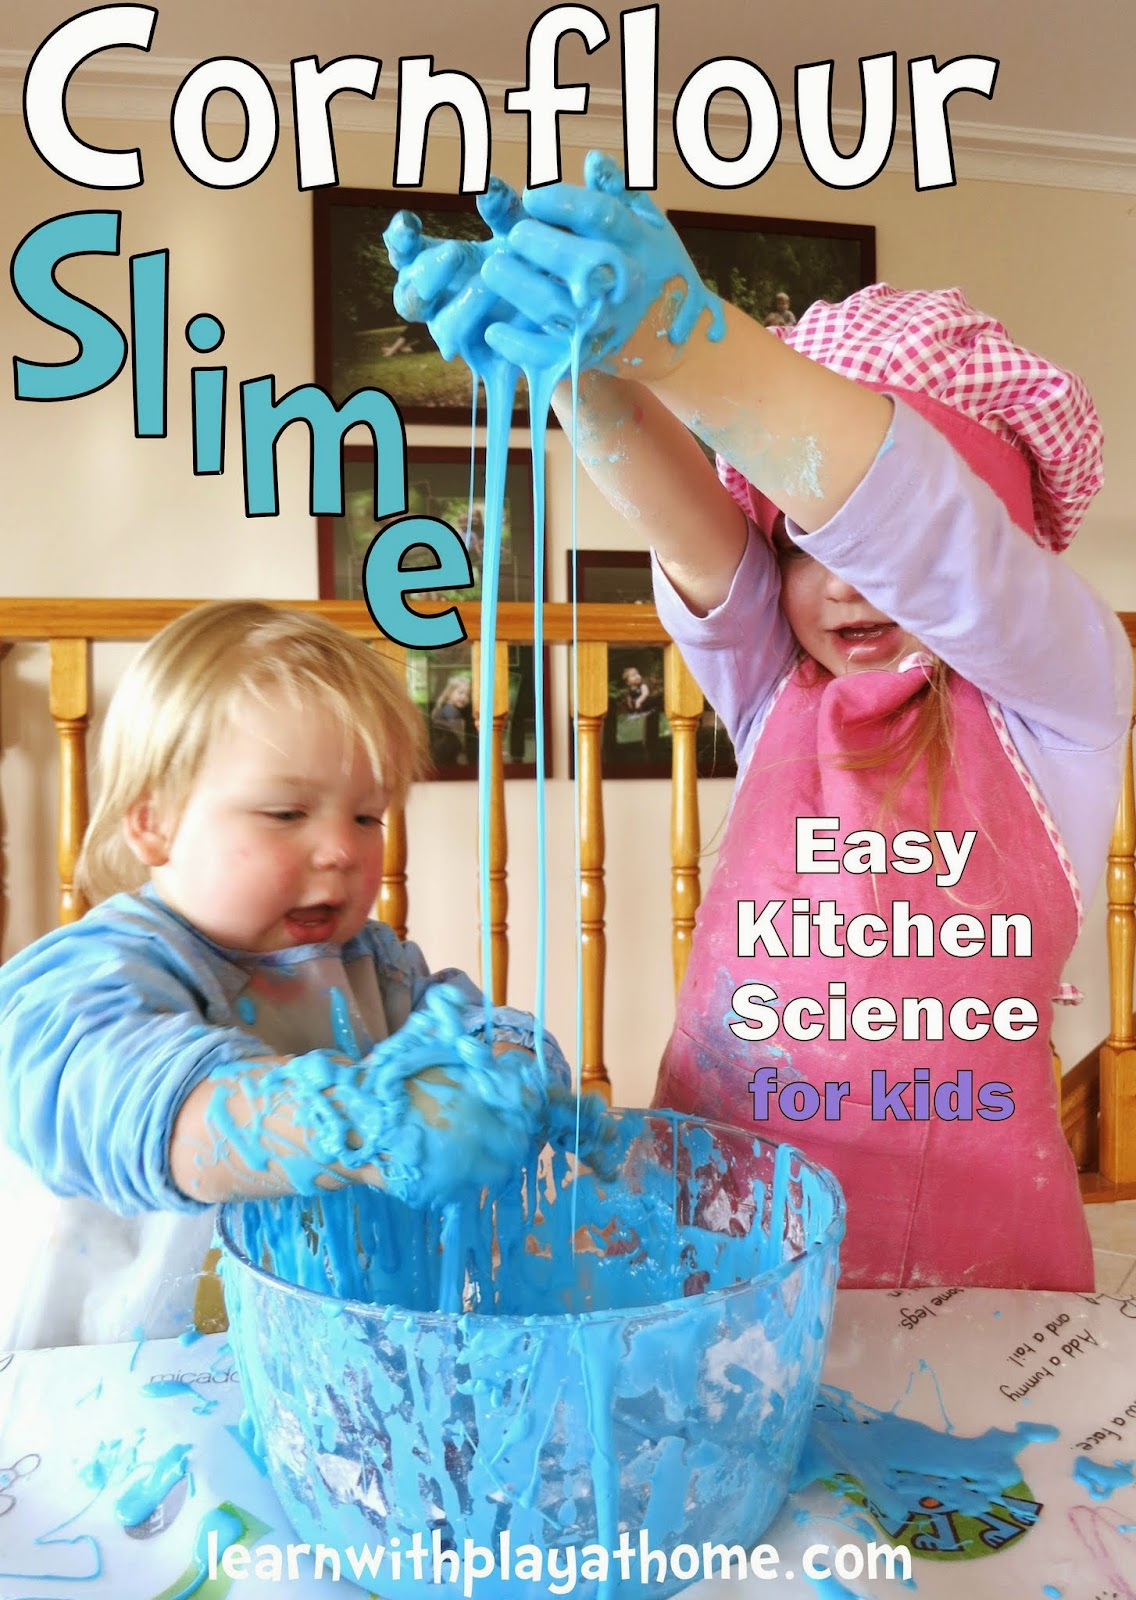 Learn with play at home cornflour slime how to make and what not aug 8 2013 ccuart Gallery